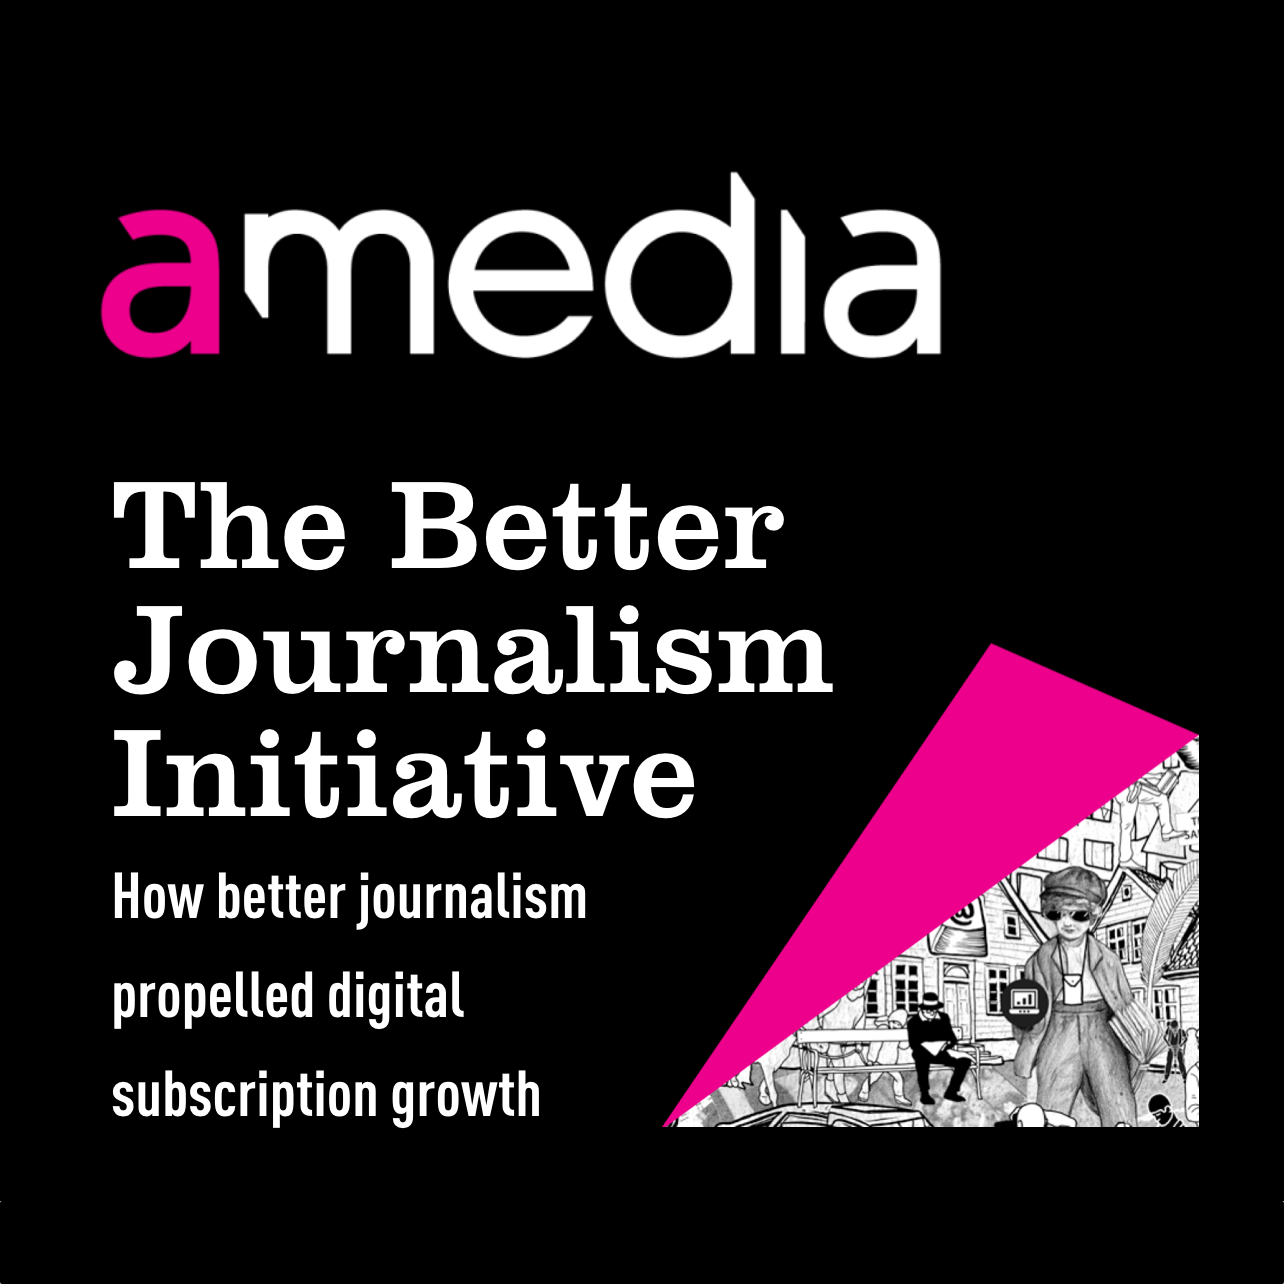 The Better Journalism Initiative: How better journalism propelled digital subscription growth